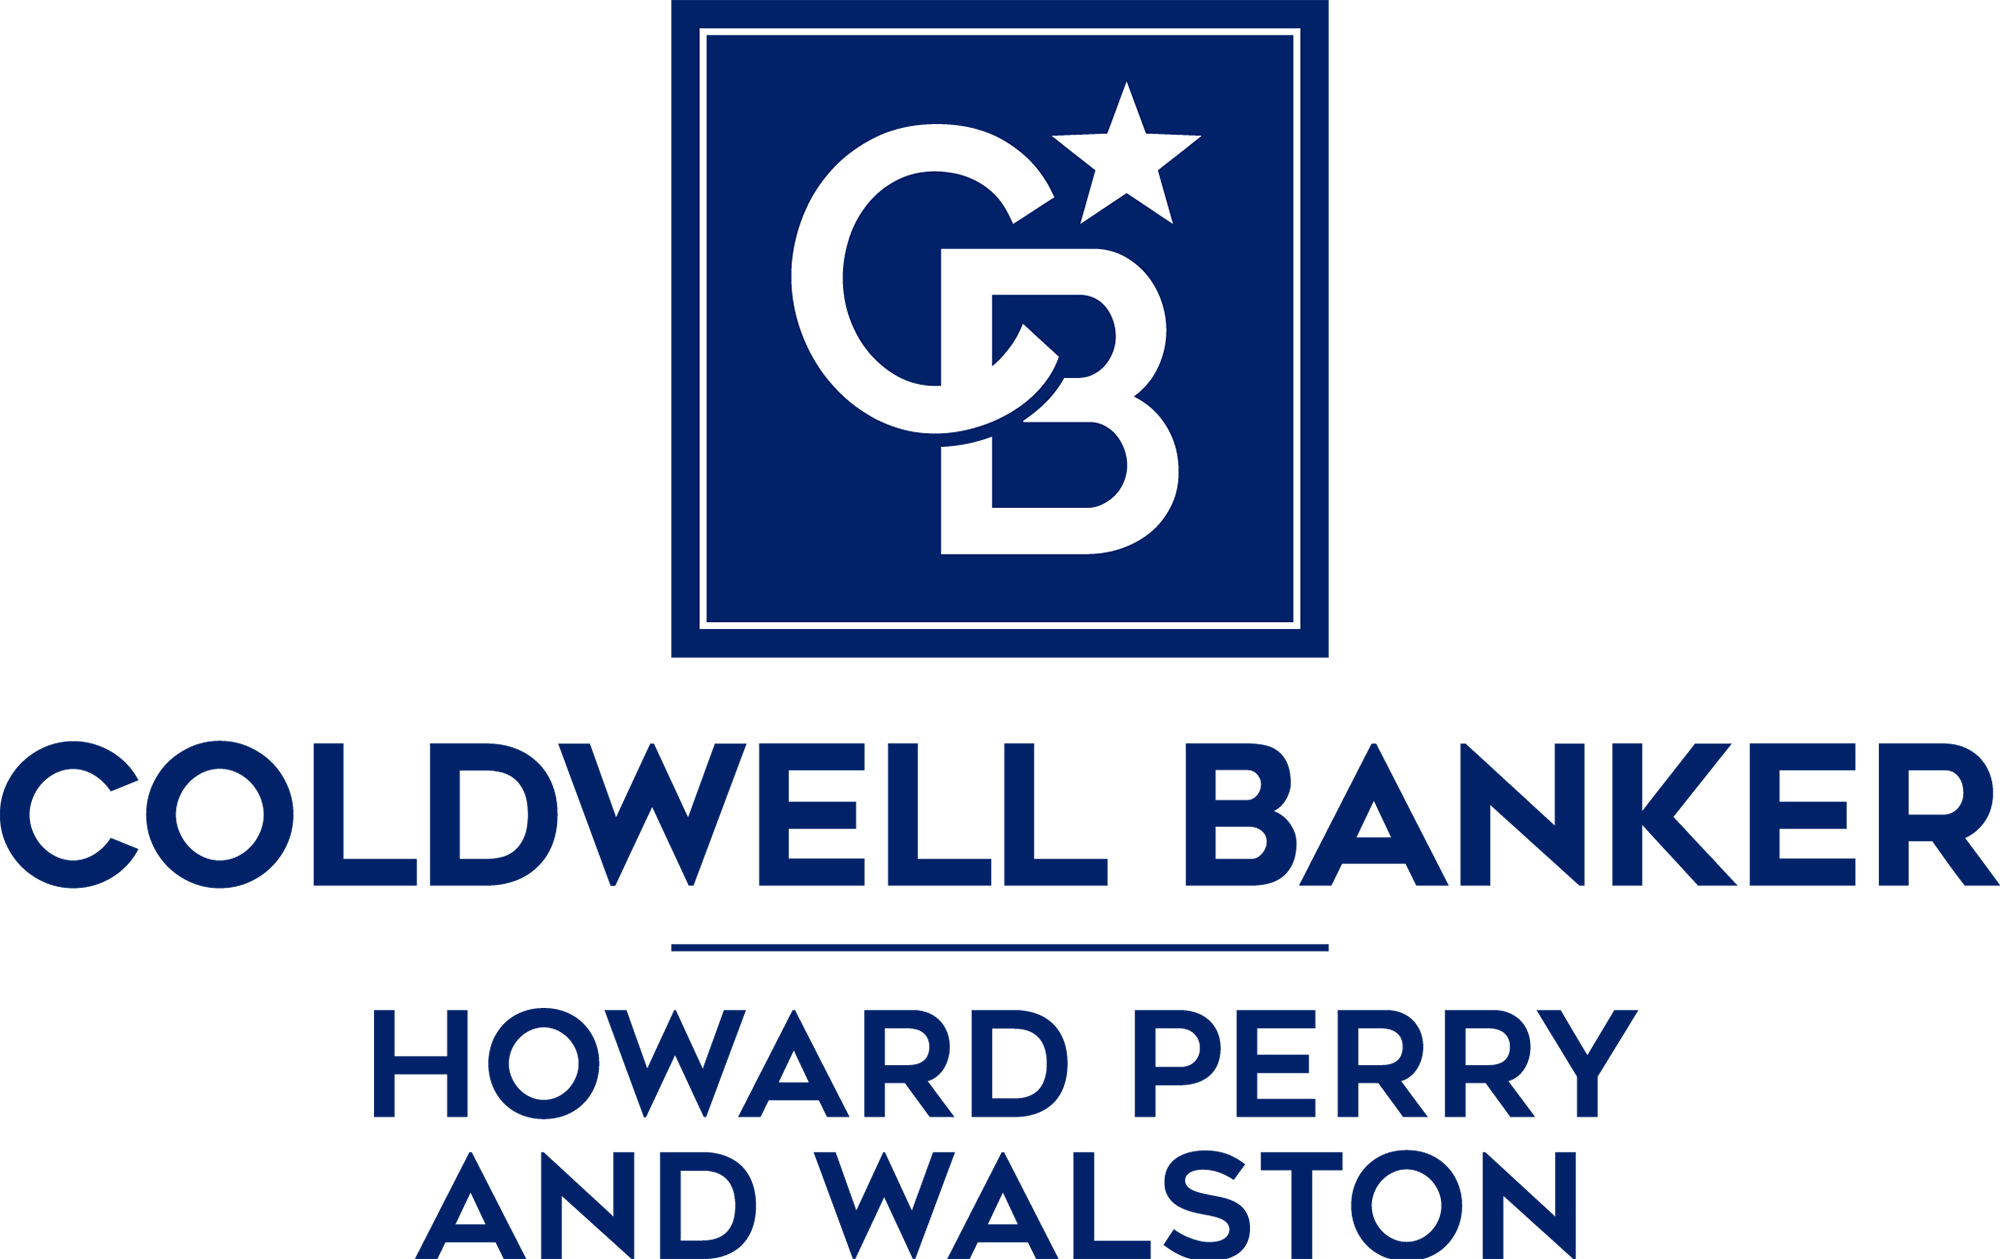 Coldwell Banker | Howard Perry and Walston